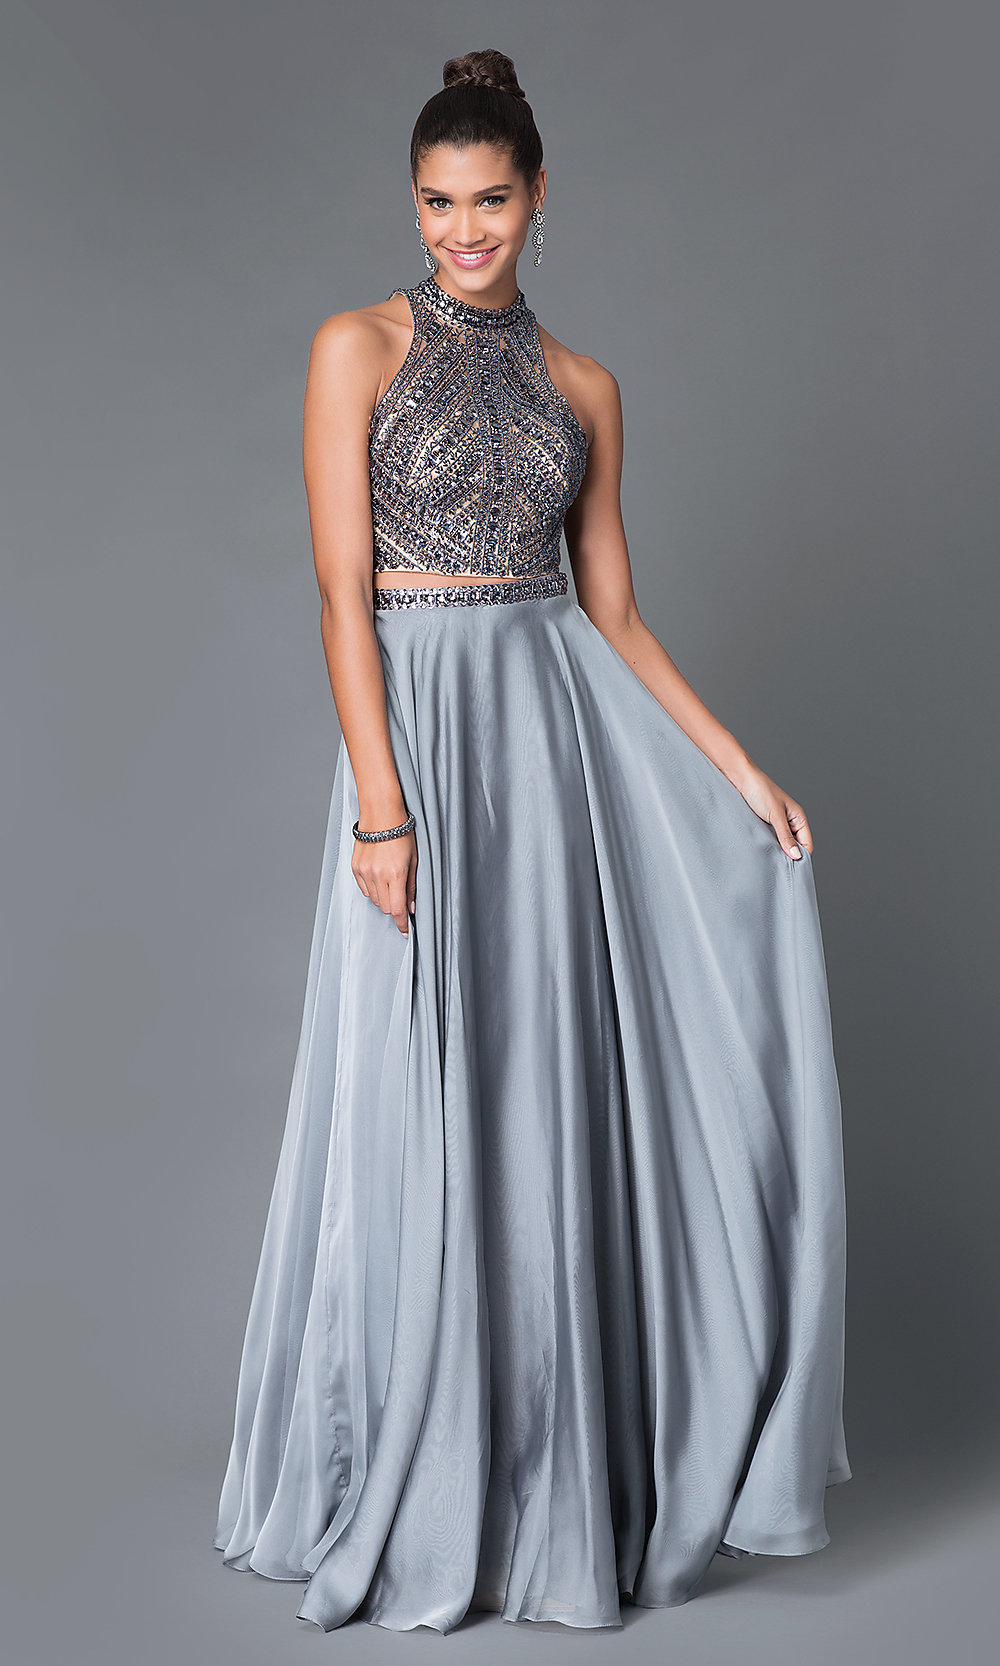 Image Result For Bridesmaid Jewelry For Halter Dress